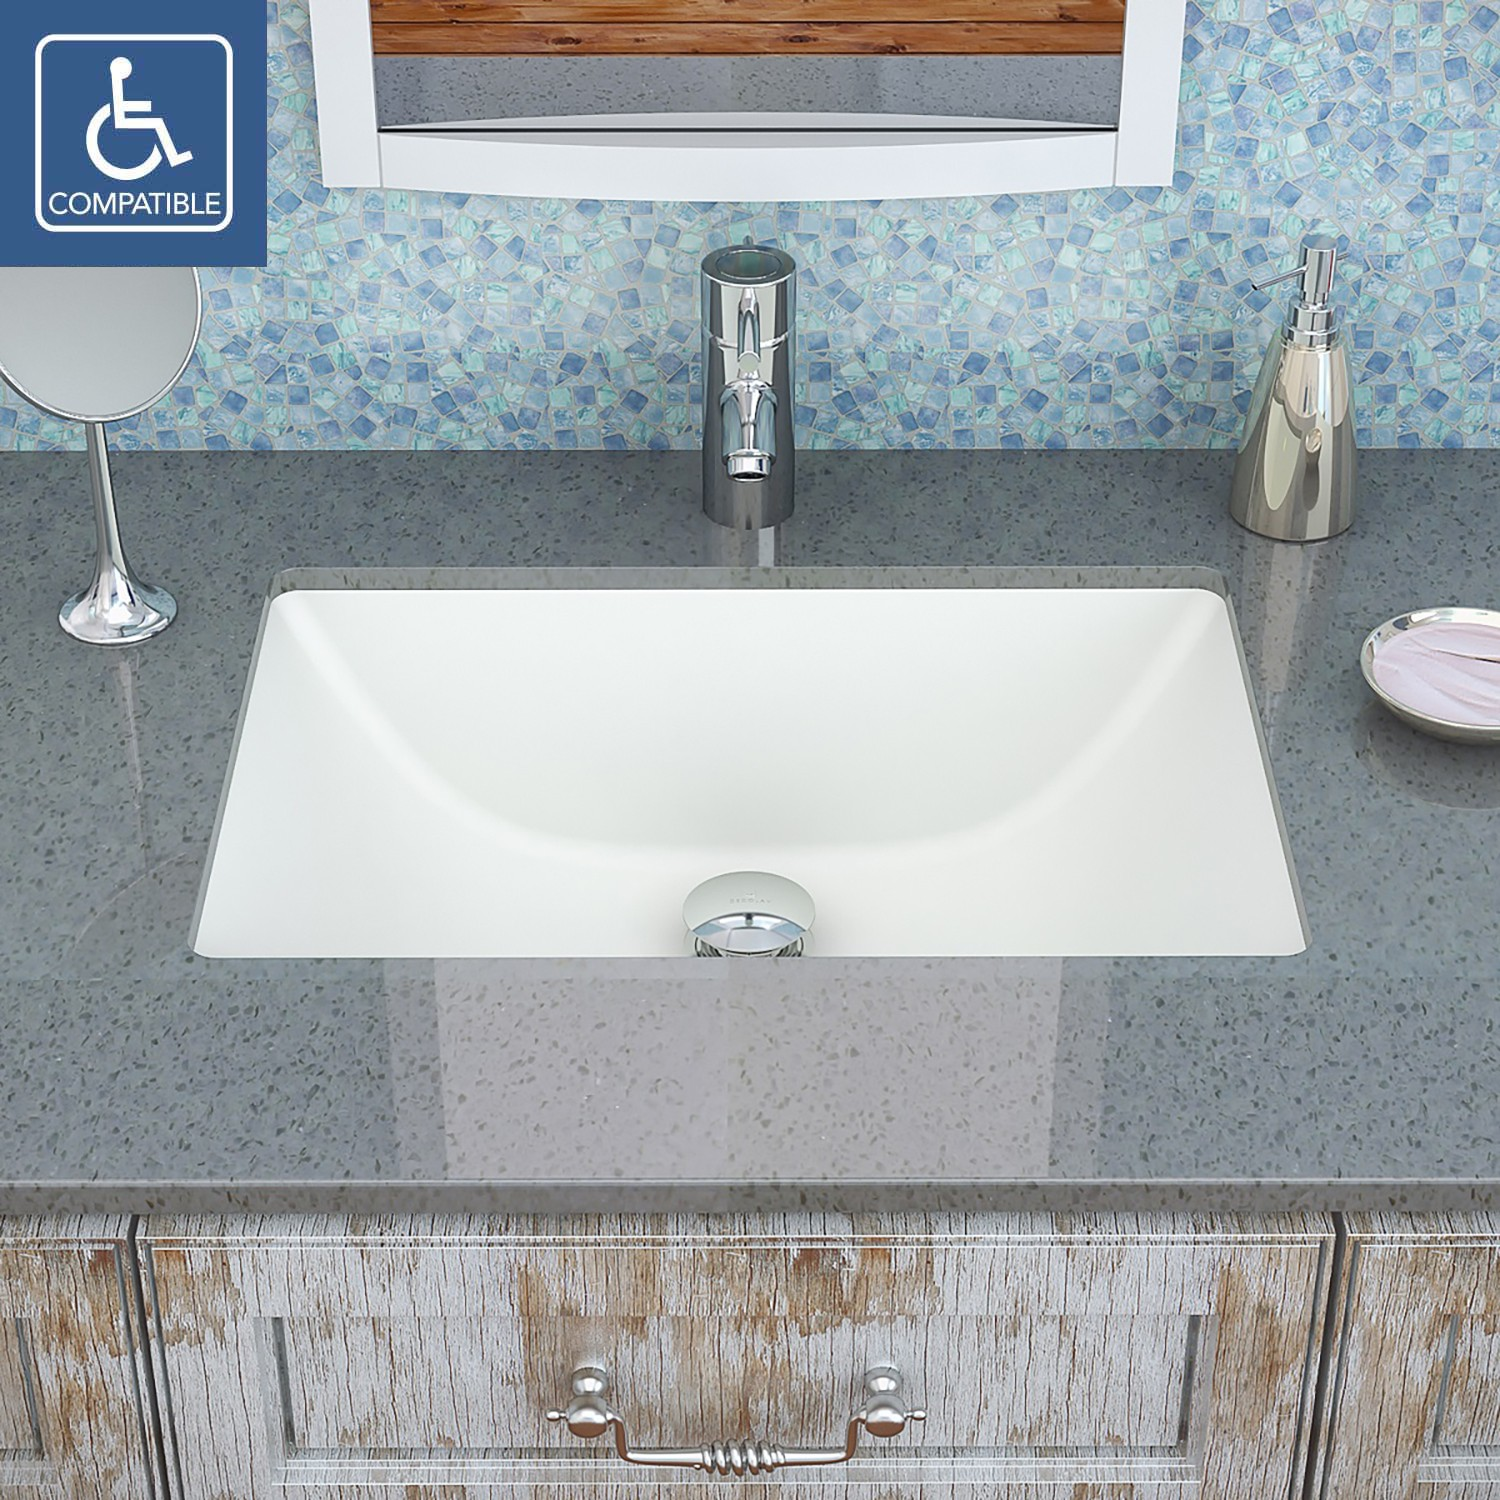 a rectangle vitreous china sink has it all classic design high and timeless beauty this rectangular undermount bathroom sink has soft